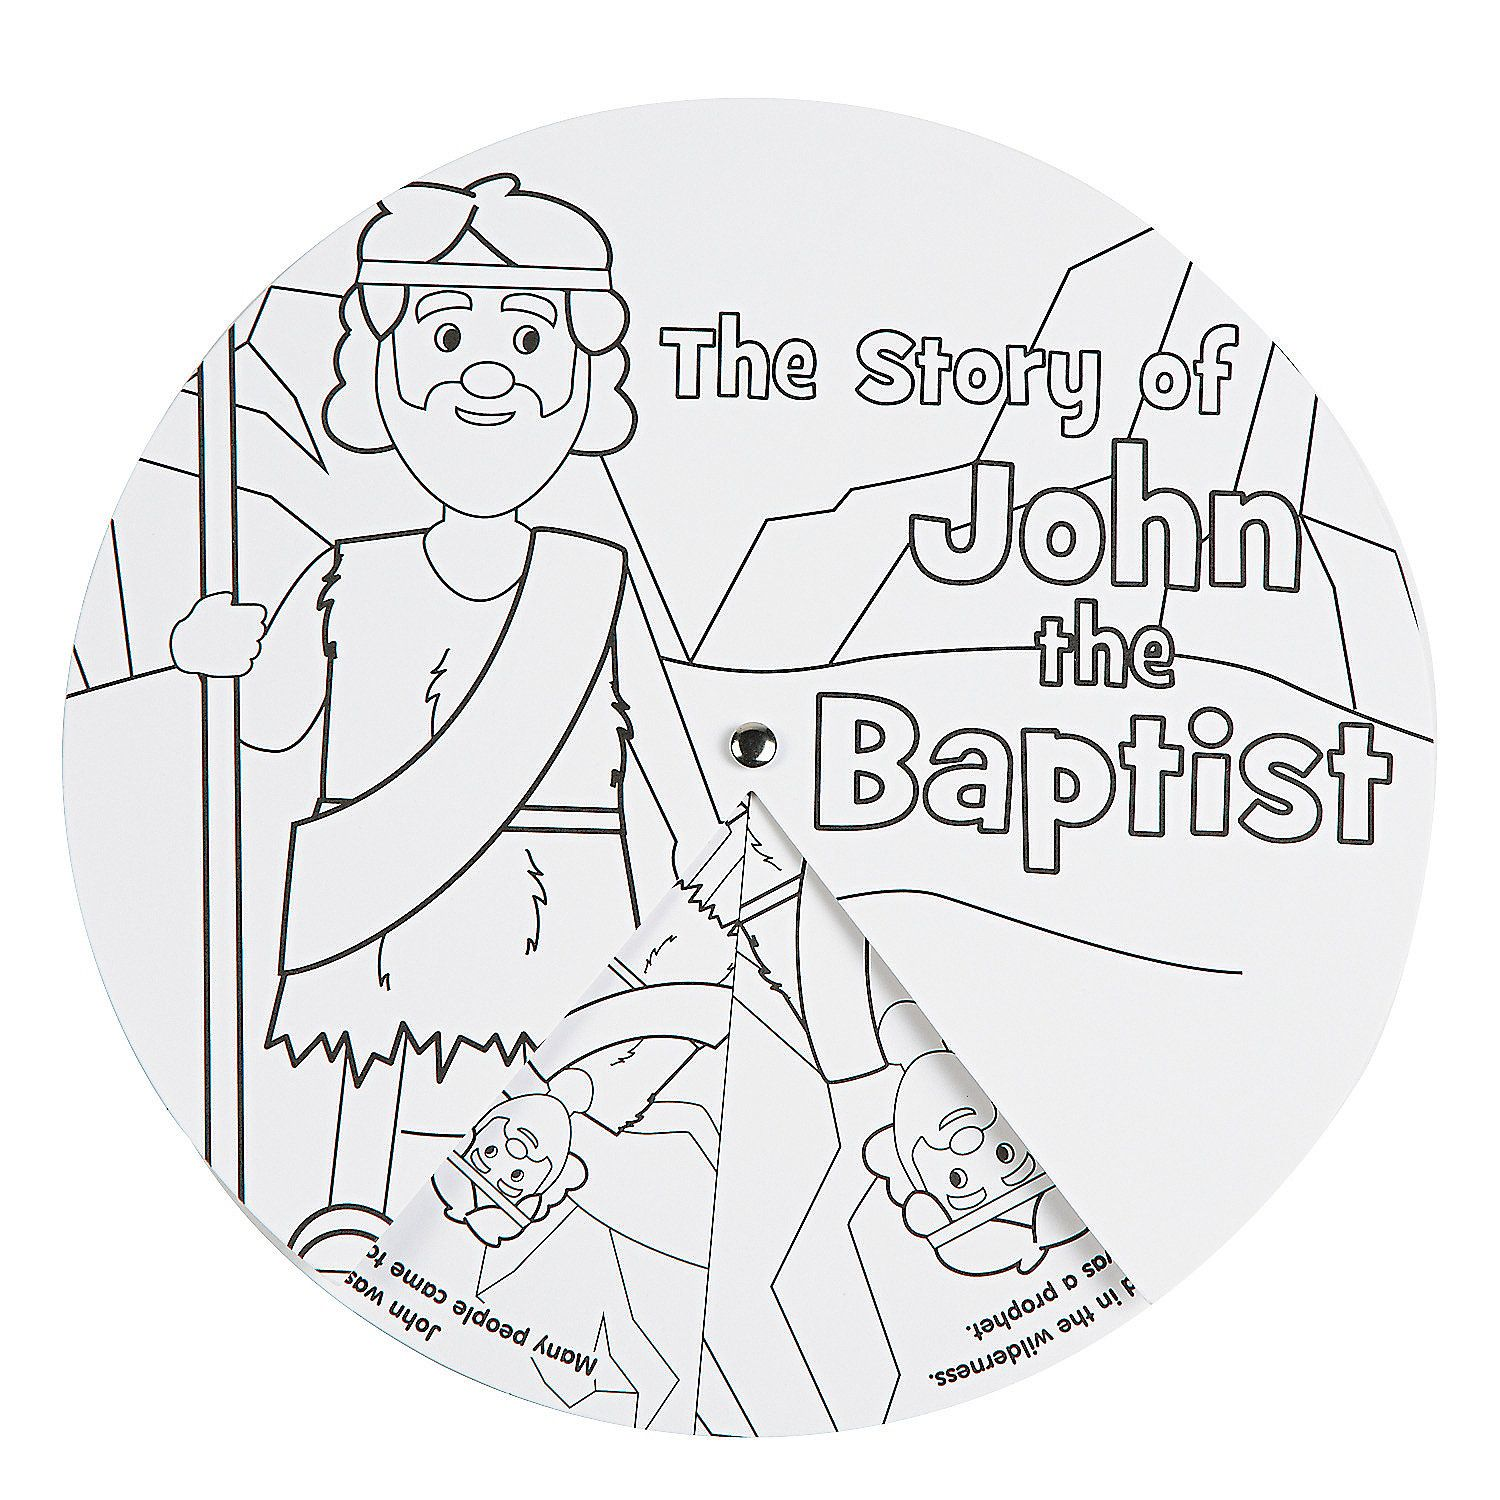 Color+Your+Own+John+the+Baptist+Story+Wheels+